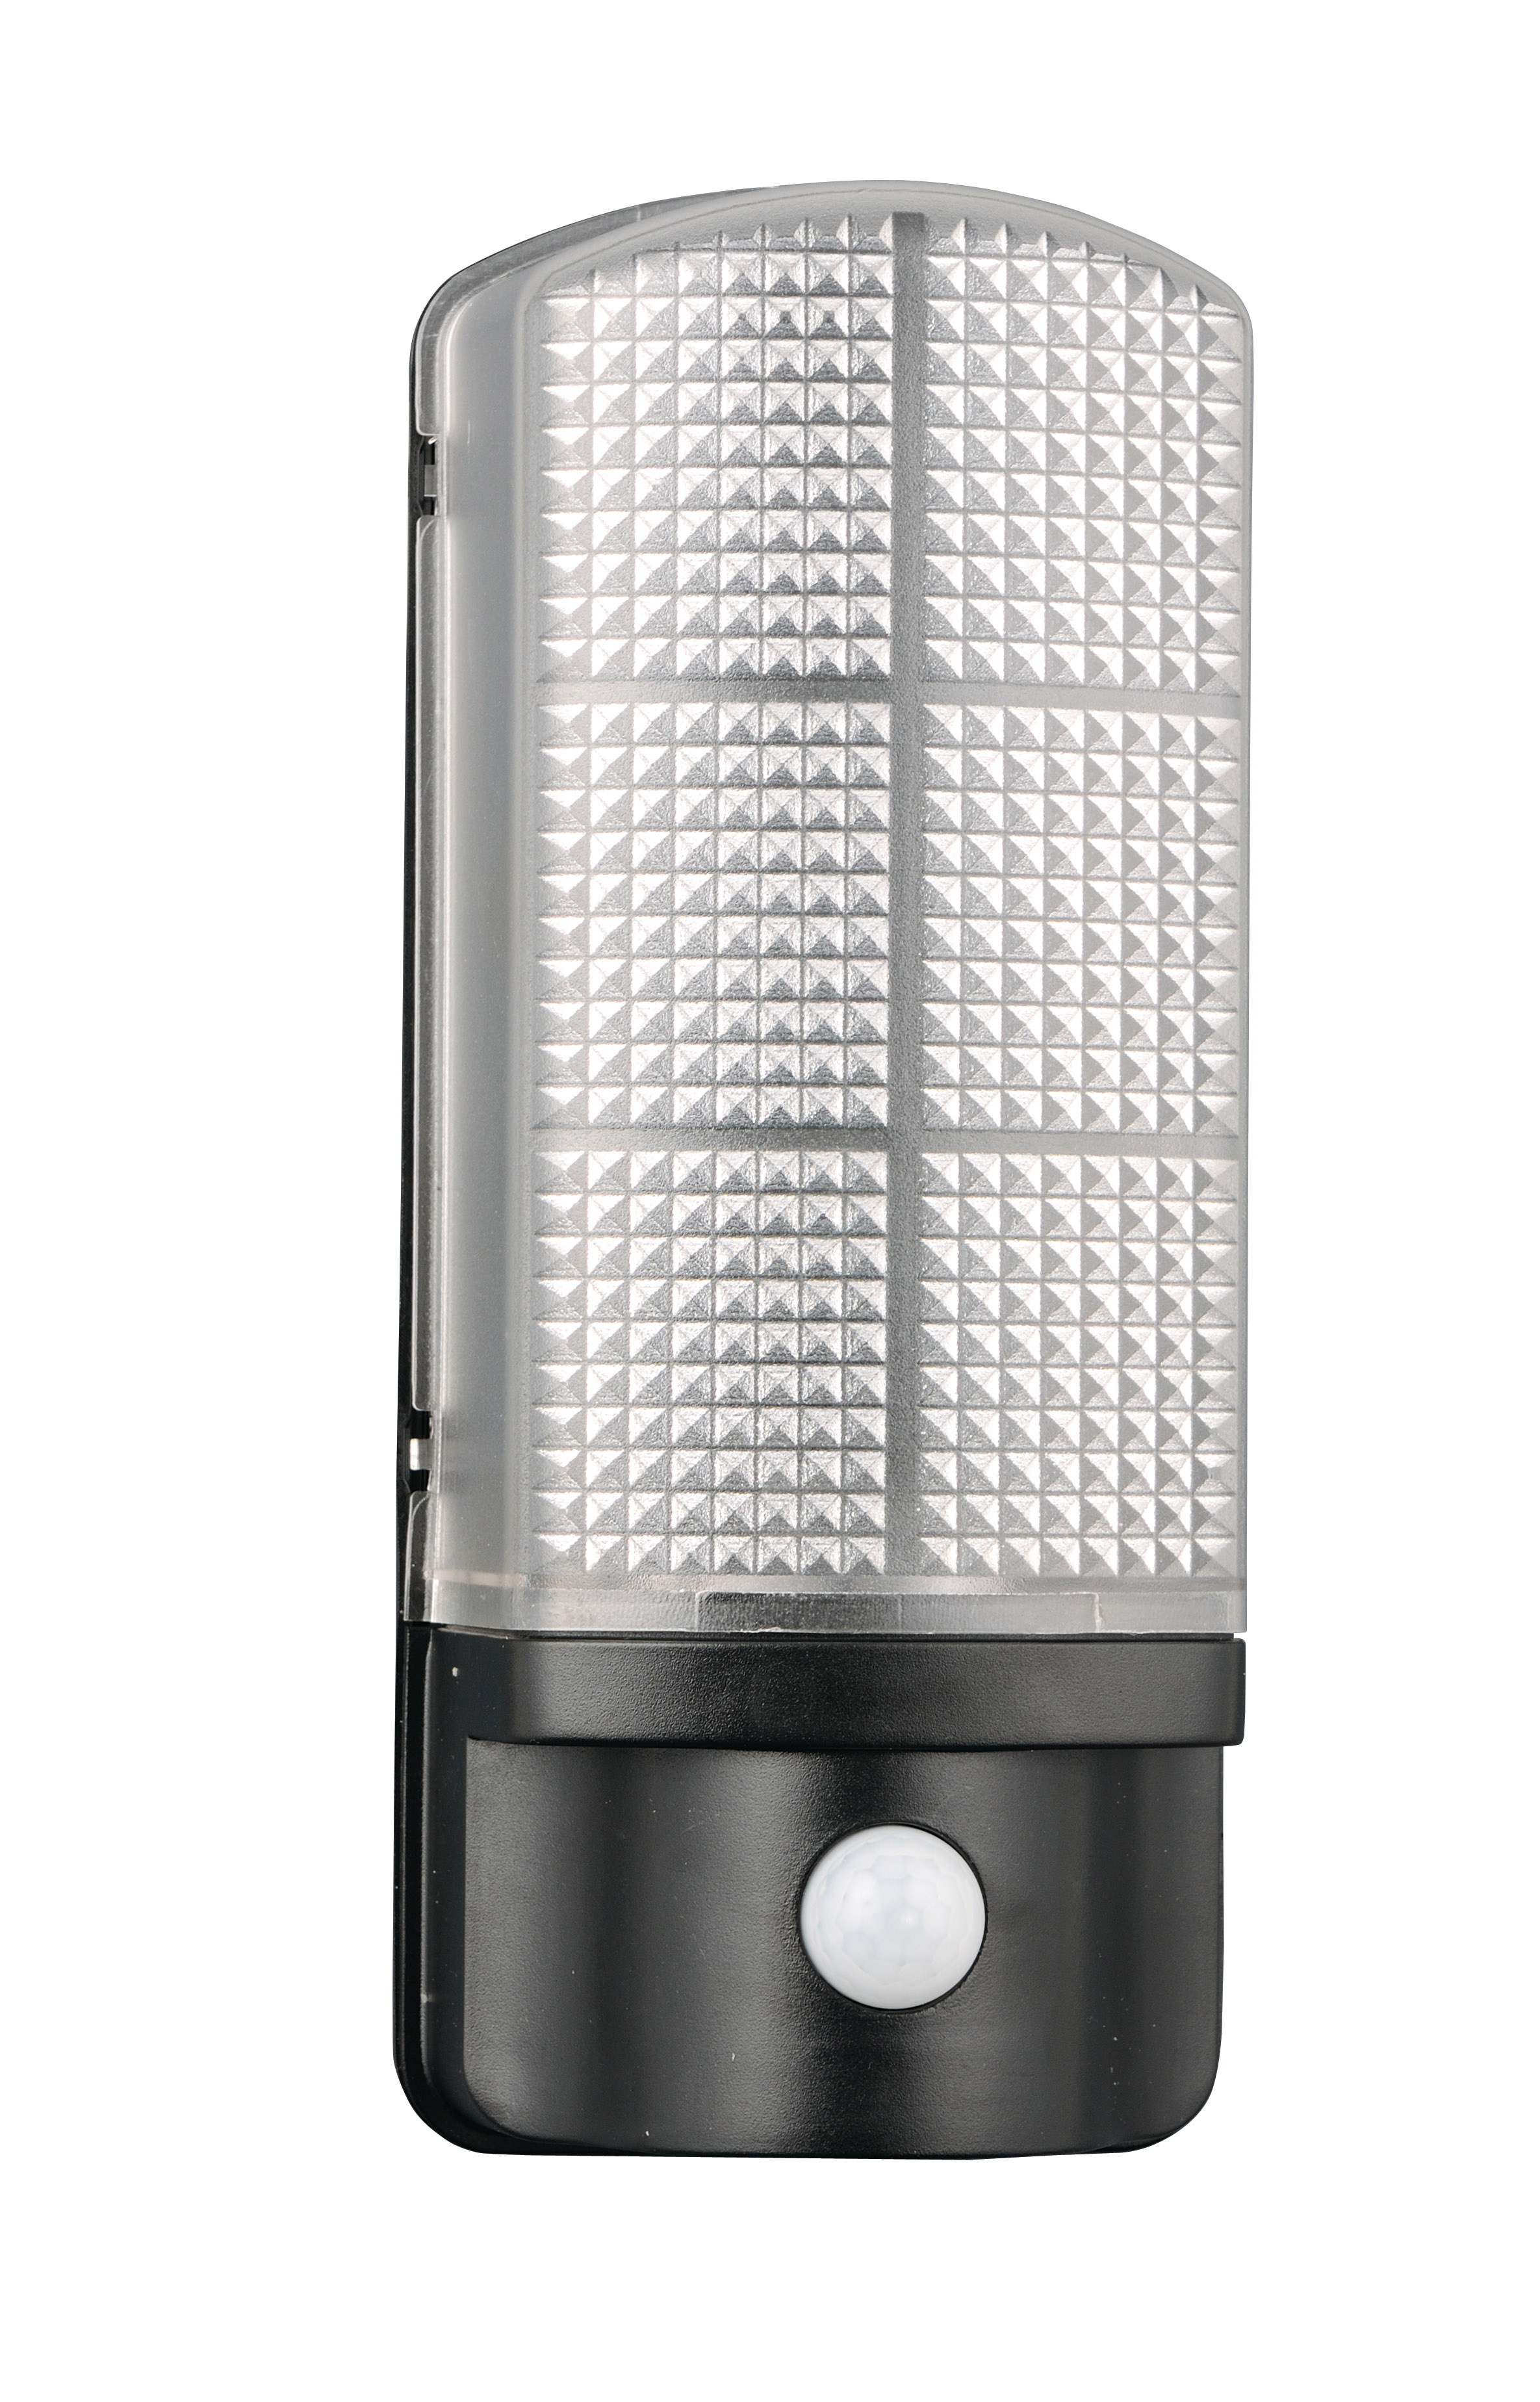 Epping led exterior wall light with day night photocell with pir epping led exterior wall light with day night photocell with pir aloadofball Choice Image